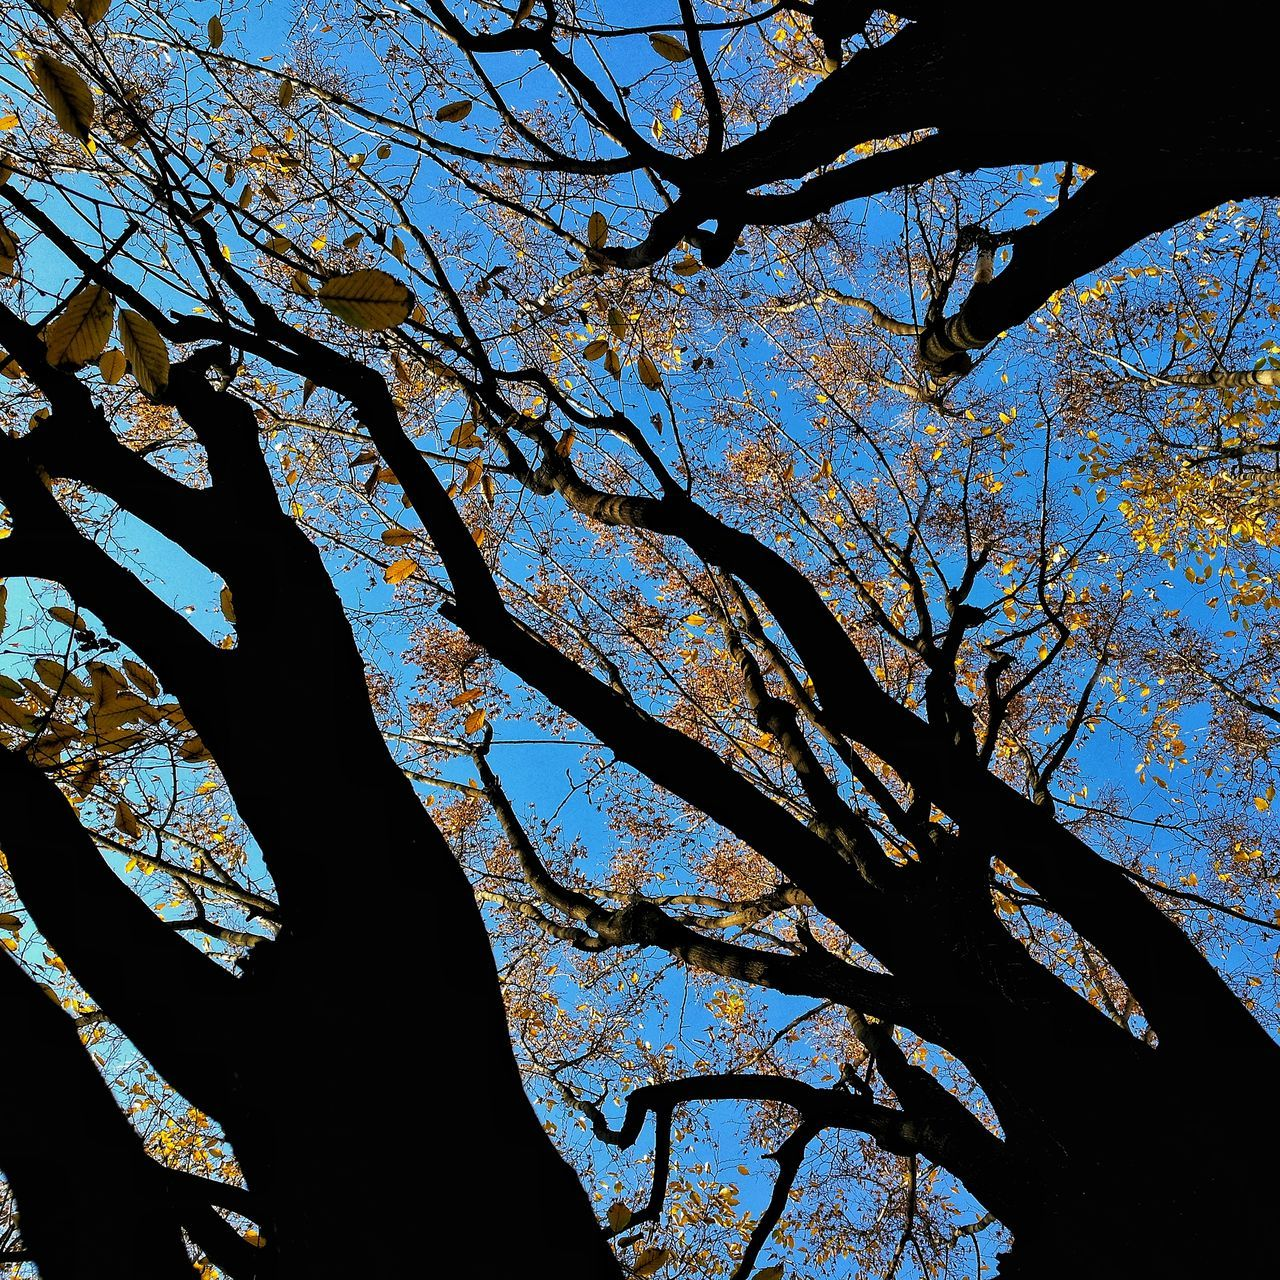 Tree Trees And Sky Tree Silhouette Tree Art Trees And Nature Treetastic Foliage Foliage Tree Low Angle View No People Tree Sky Nature Outdoors Beauty In Nature